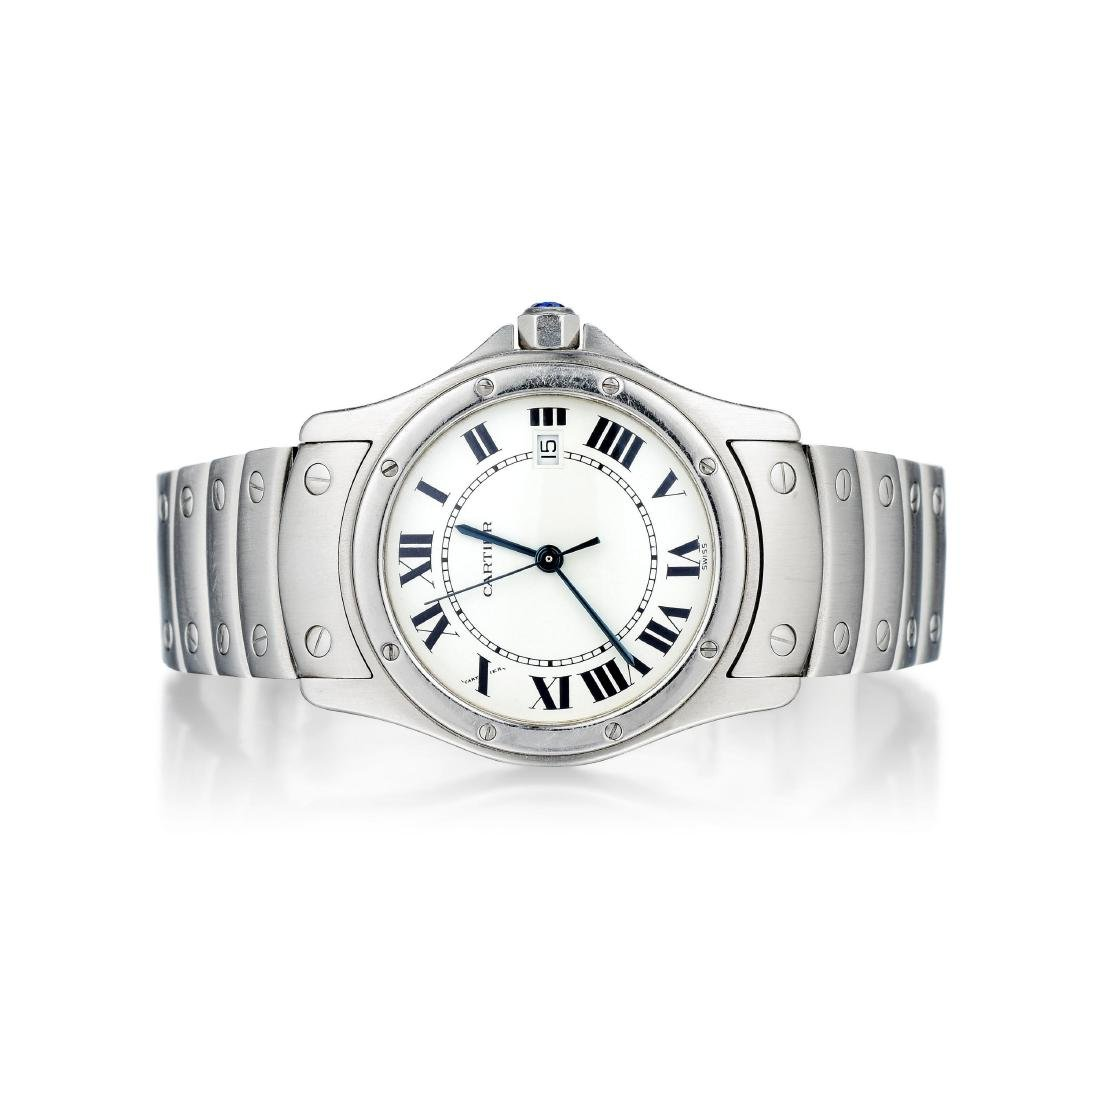 Cartier Santos Ronde Ladies Stainless Steel Watch ref.